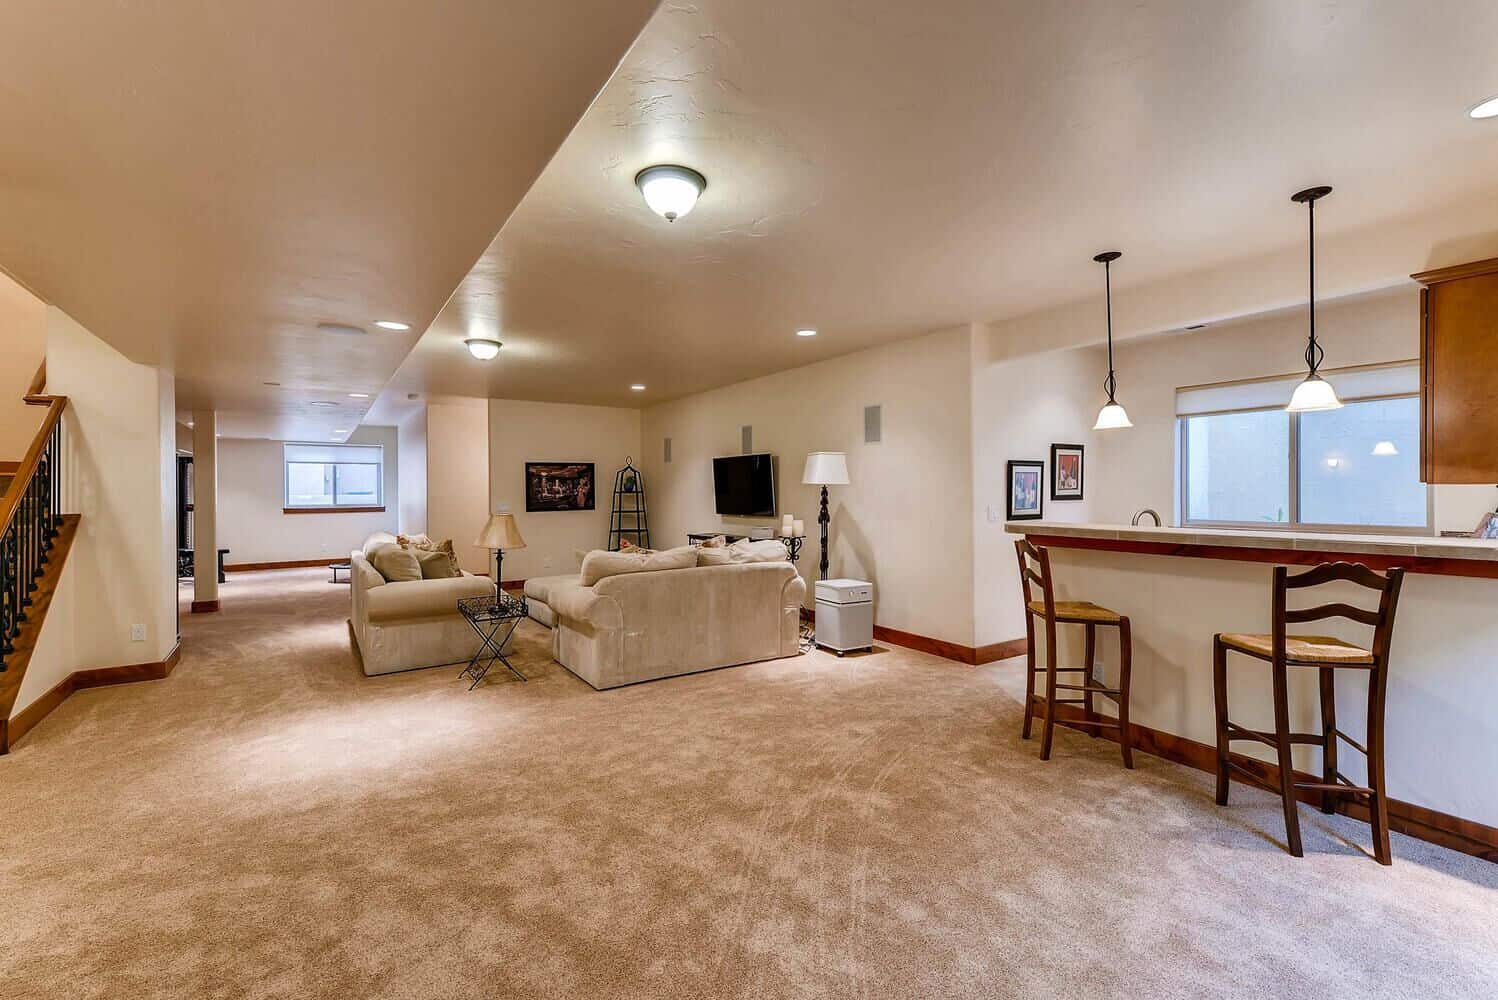 9ft Expansive Basement Rec Room with Wet Bar